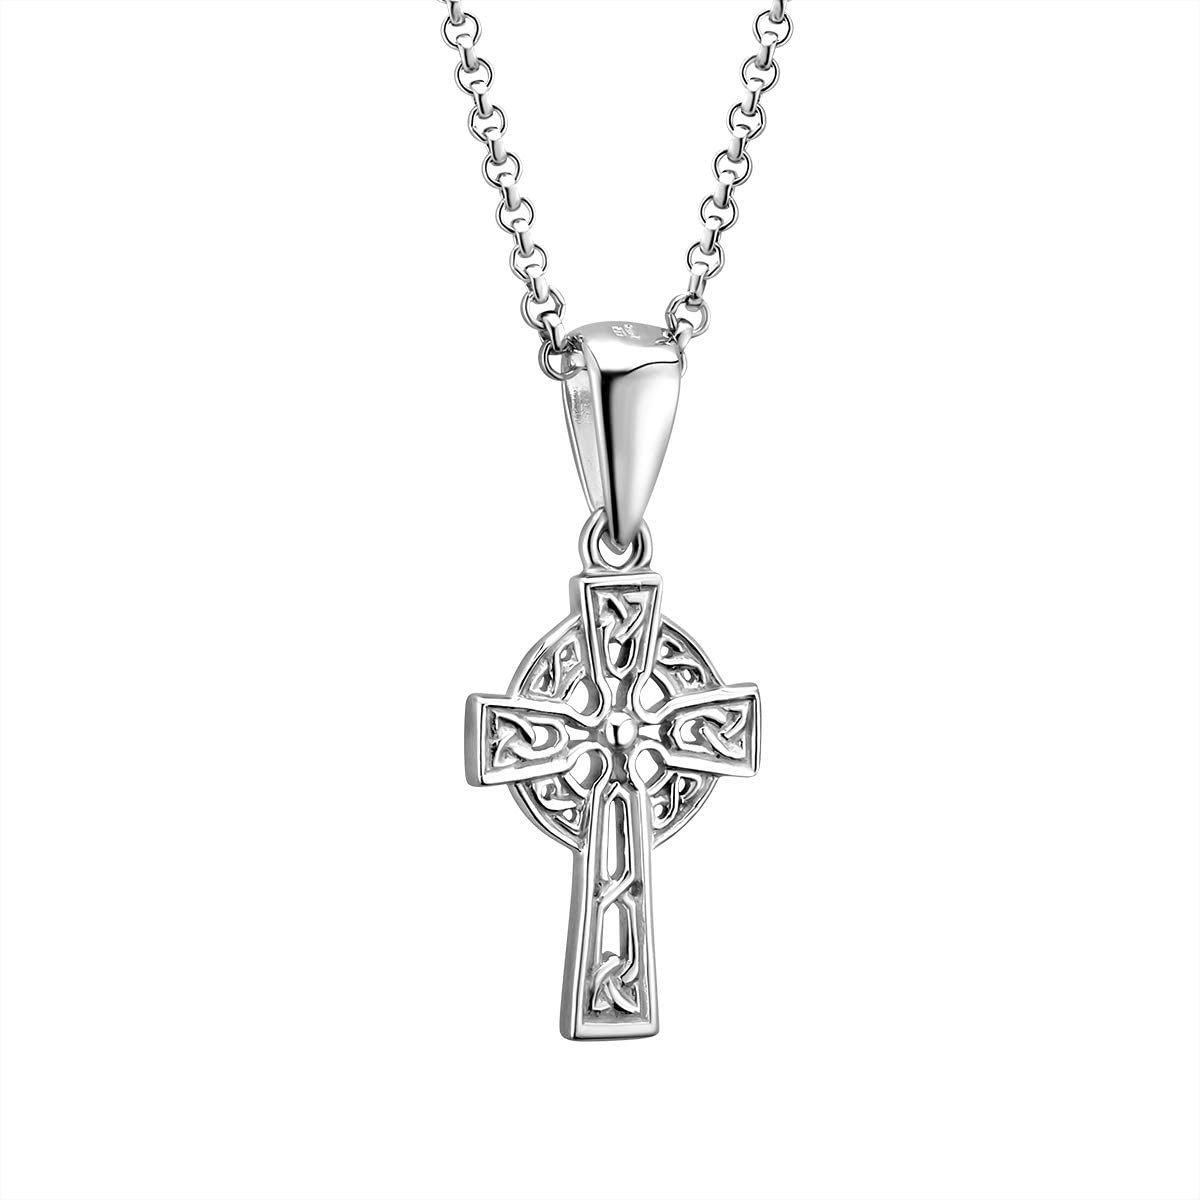 """Sterling Silver Celtic Cross Necklace Hallmarked at Irish Assay Office in Dublin Castle Available In 18"""", 20"""" and 24"""" Lengths with 2"""" Extension Chain & Easy to Use Lobster Clasp Made in Ireland"""